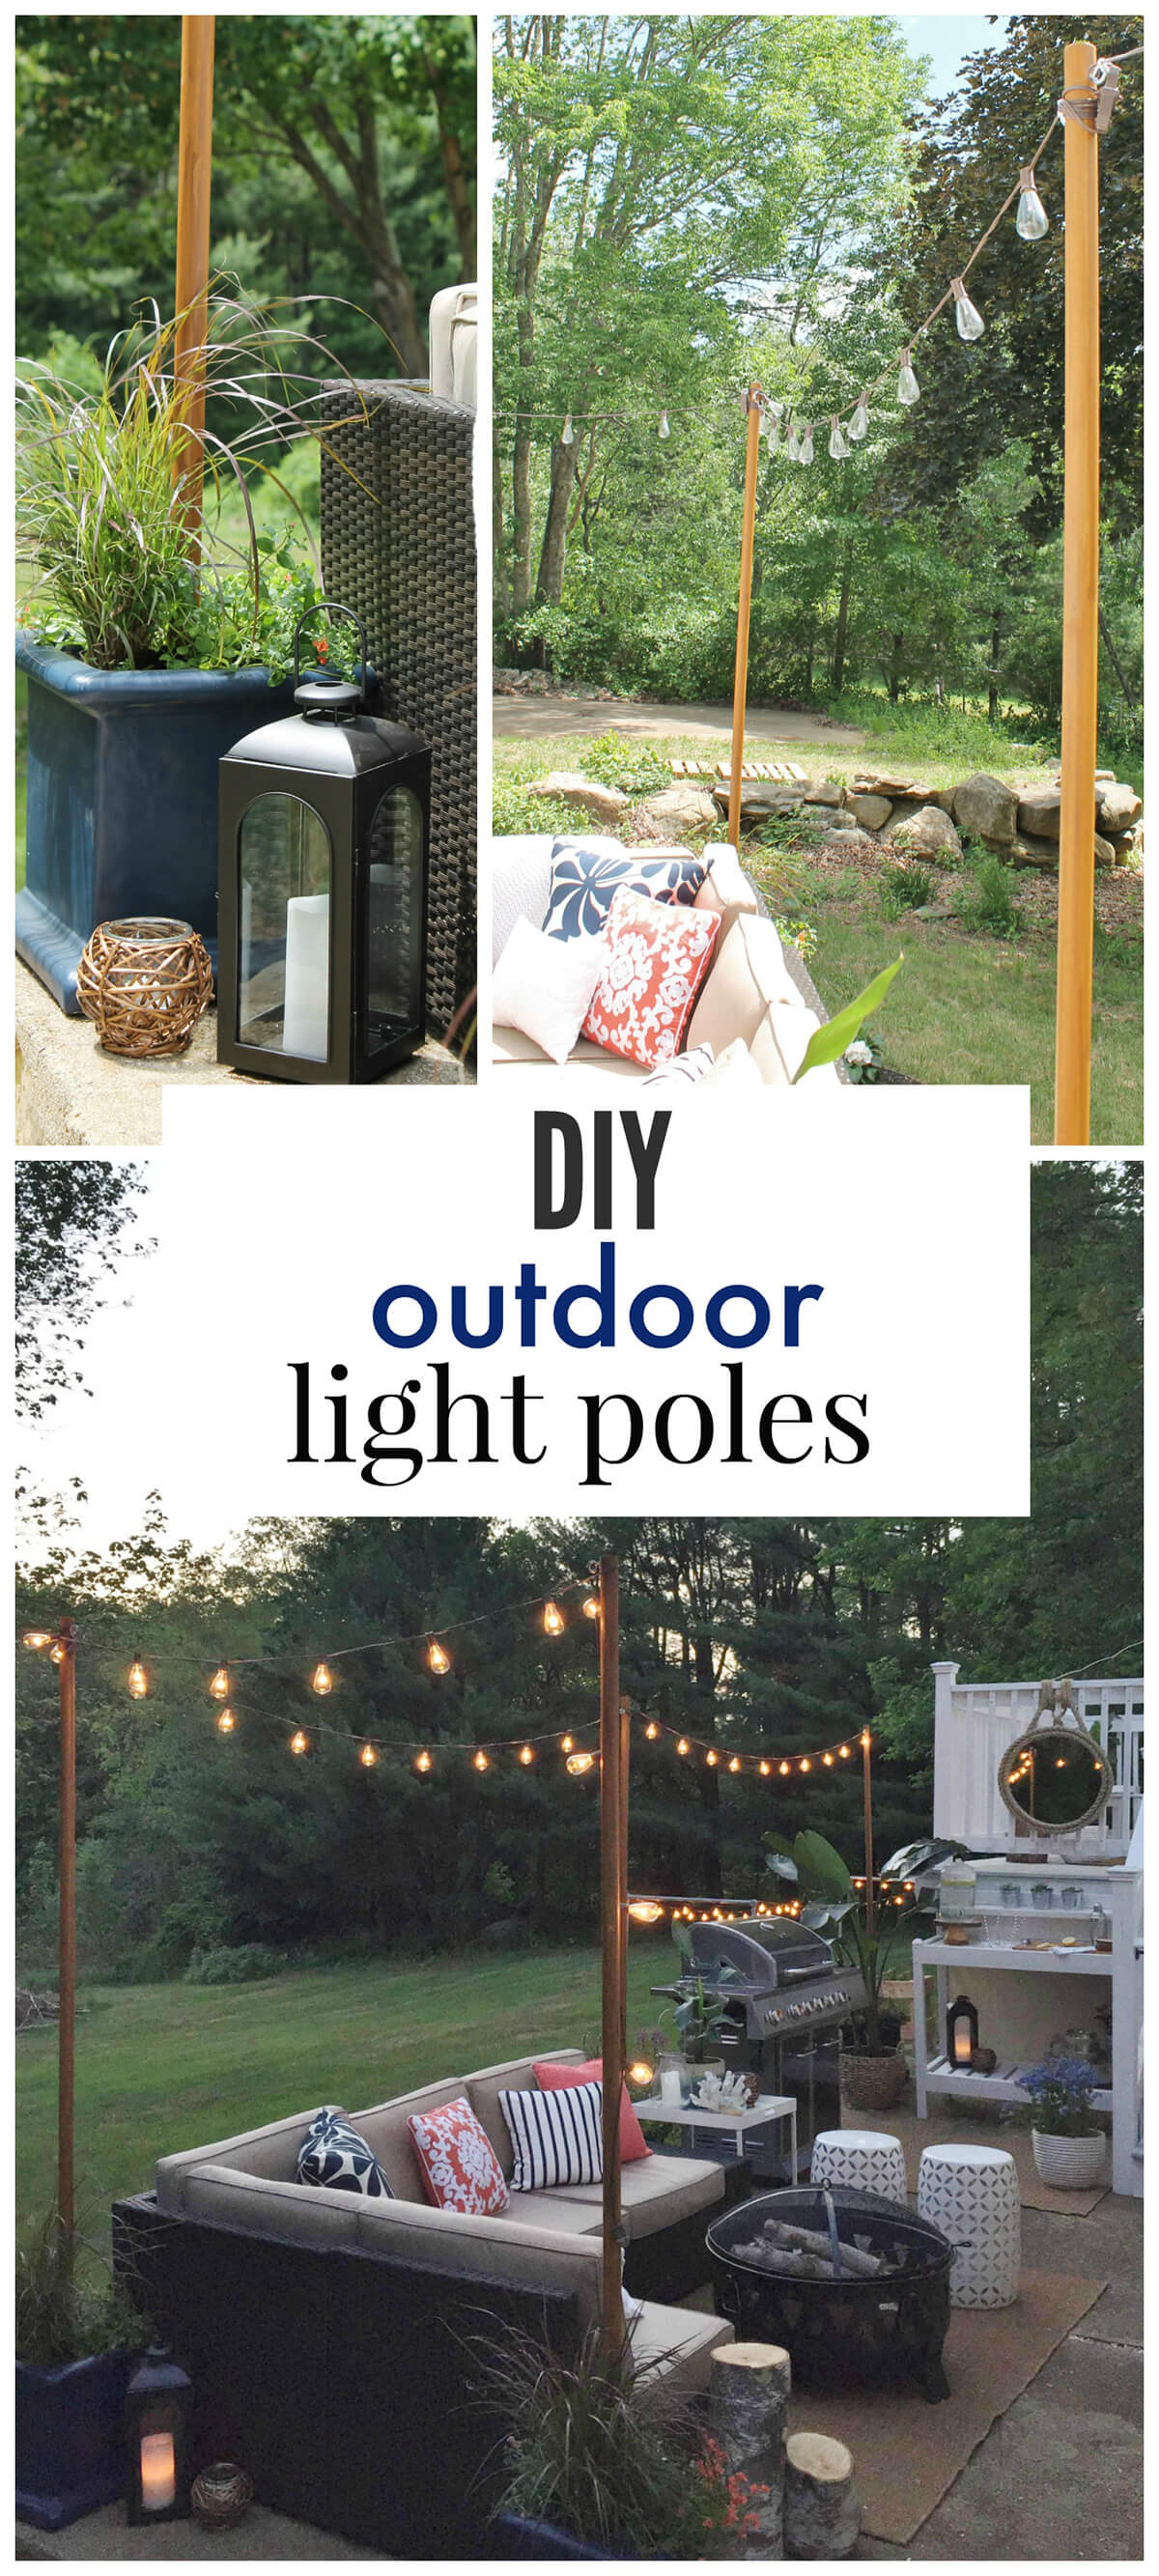 25 Best DIY Outdoor Lighting Ideas and Designs for 2020 on Backyard String Light Designs id=65194